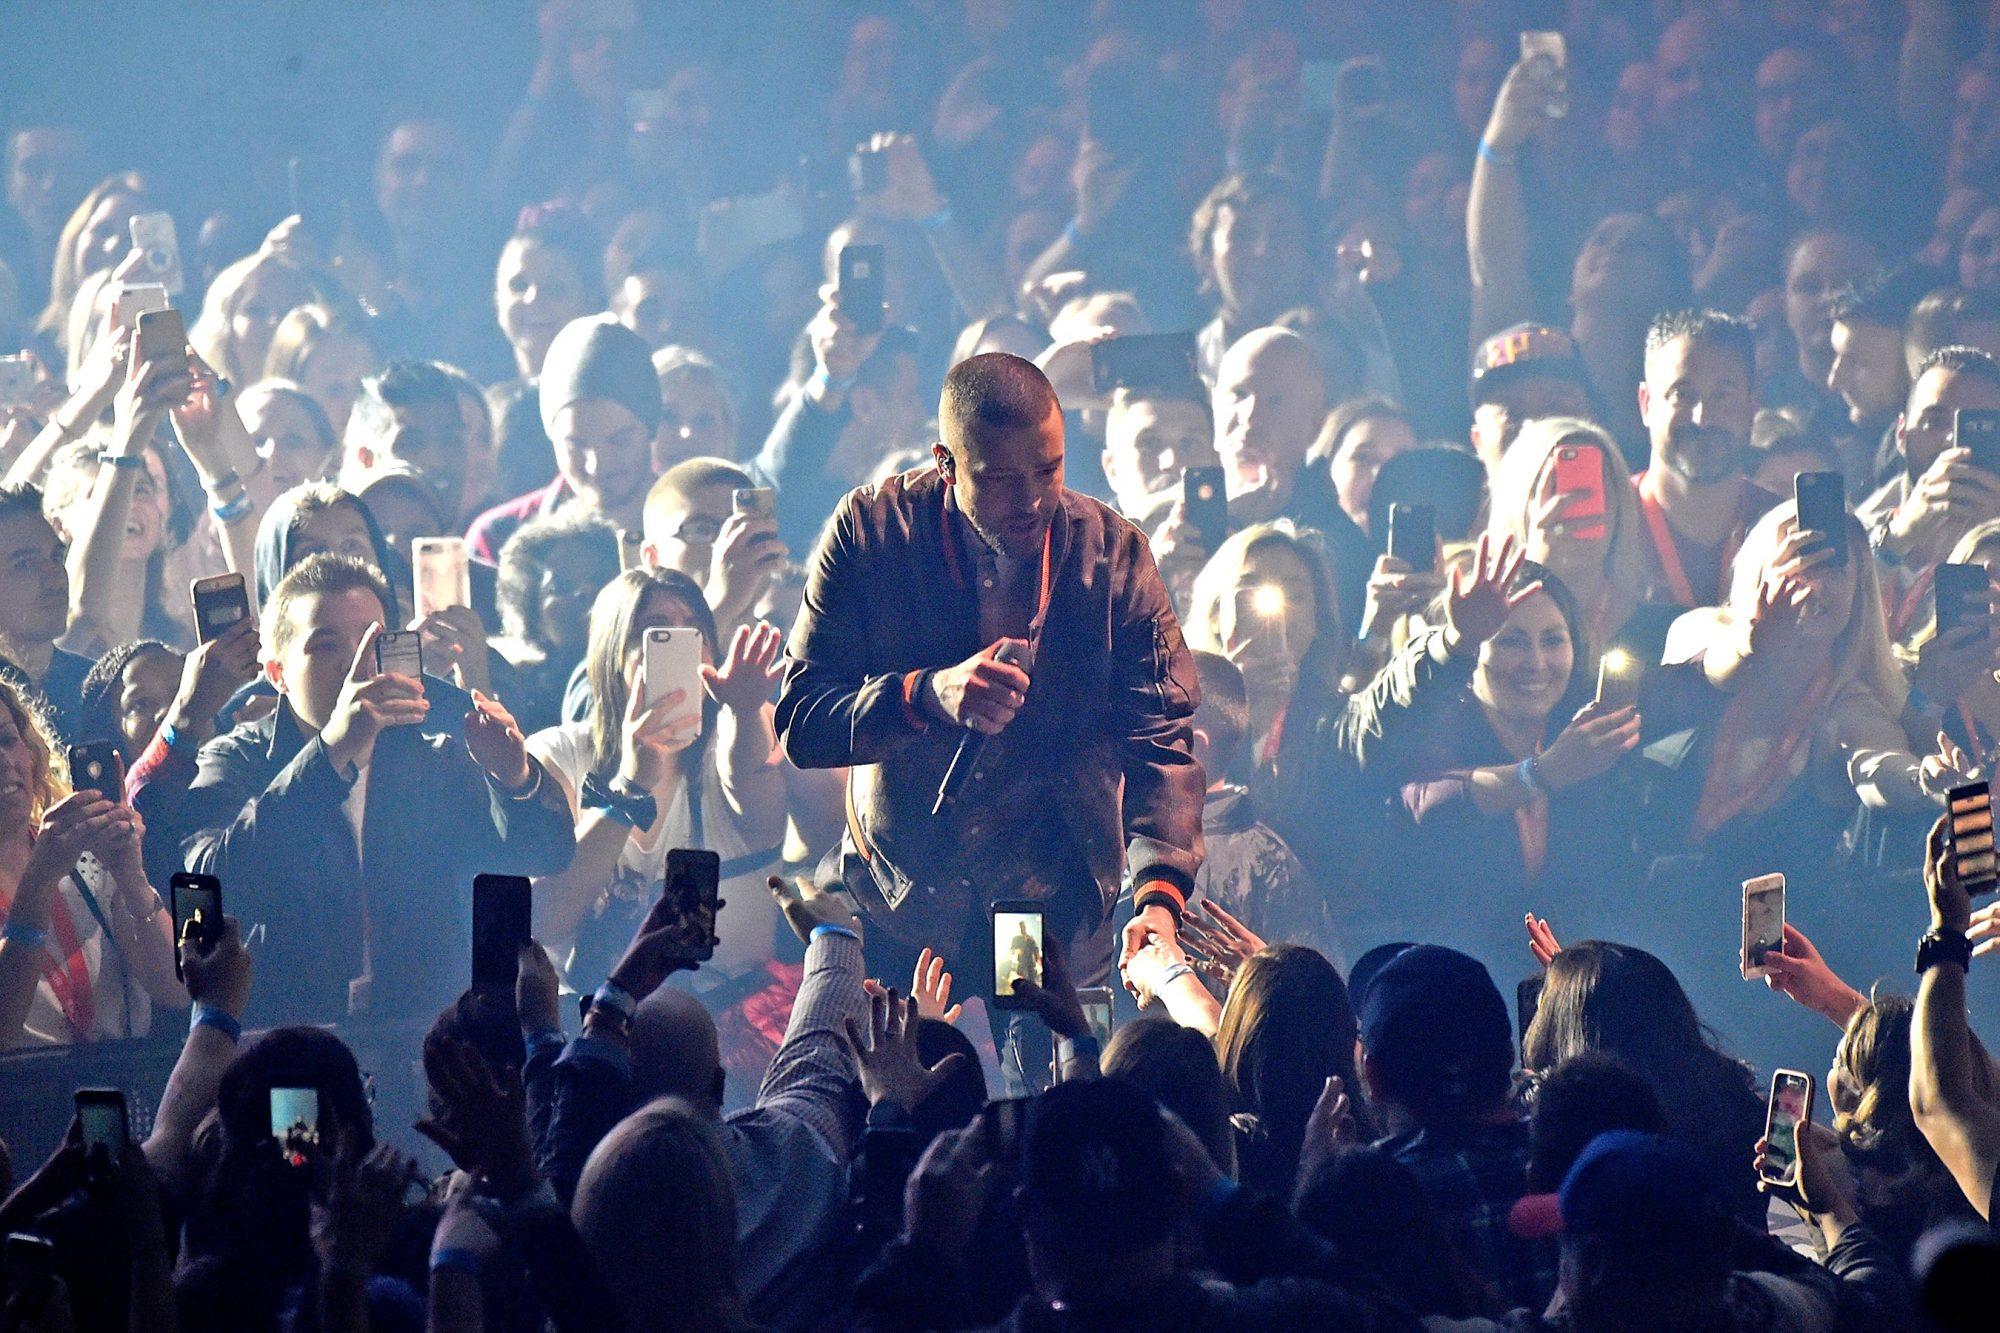 Justin Timberlake gives away shots to celebrate tour launch